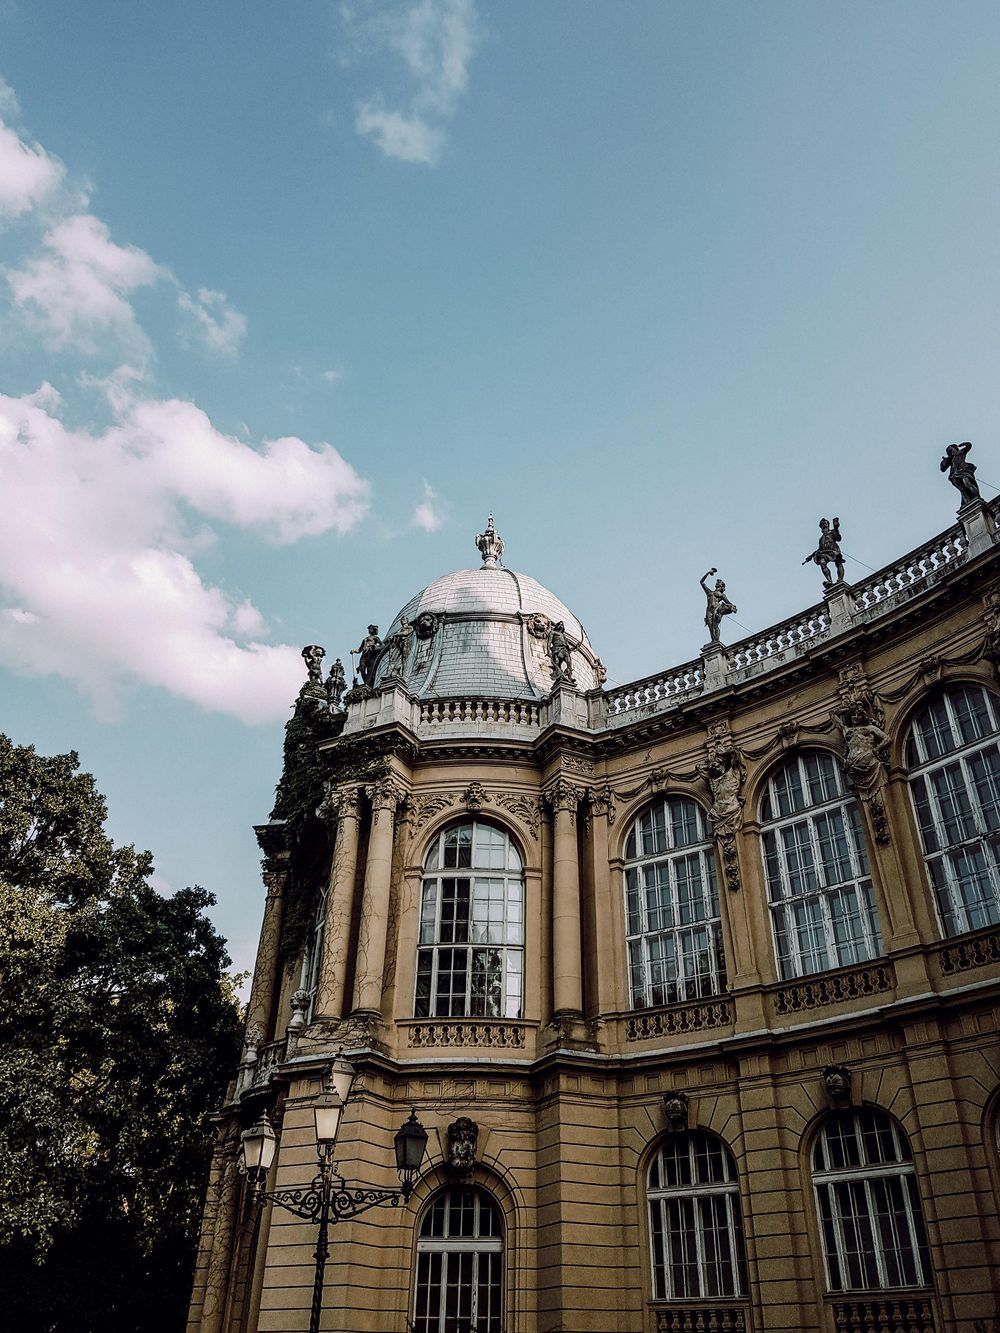 Summer in Budapest - image 3 - student project